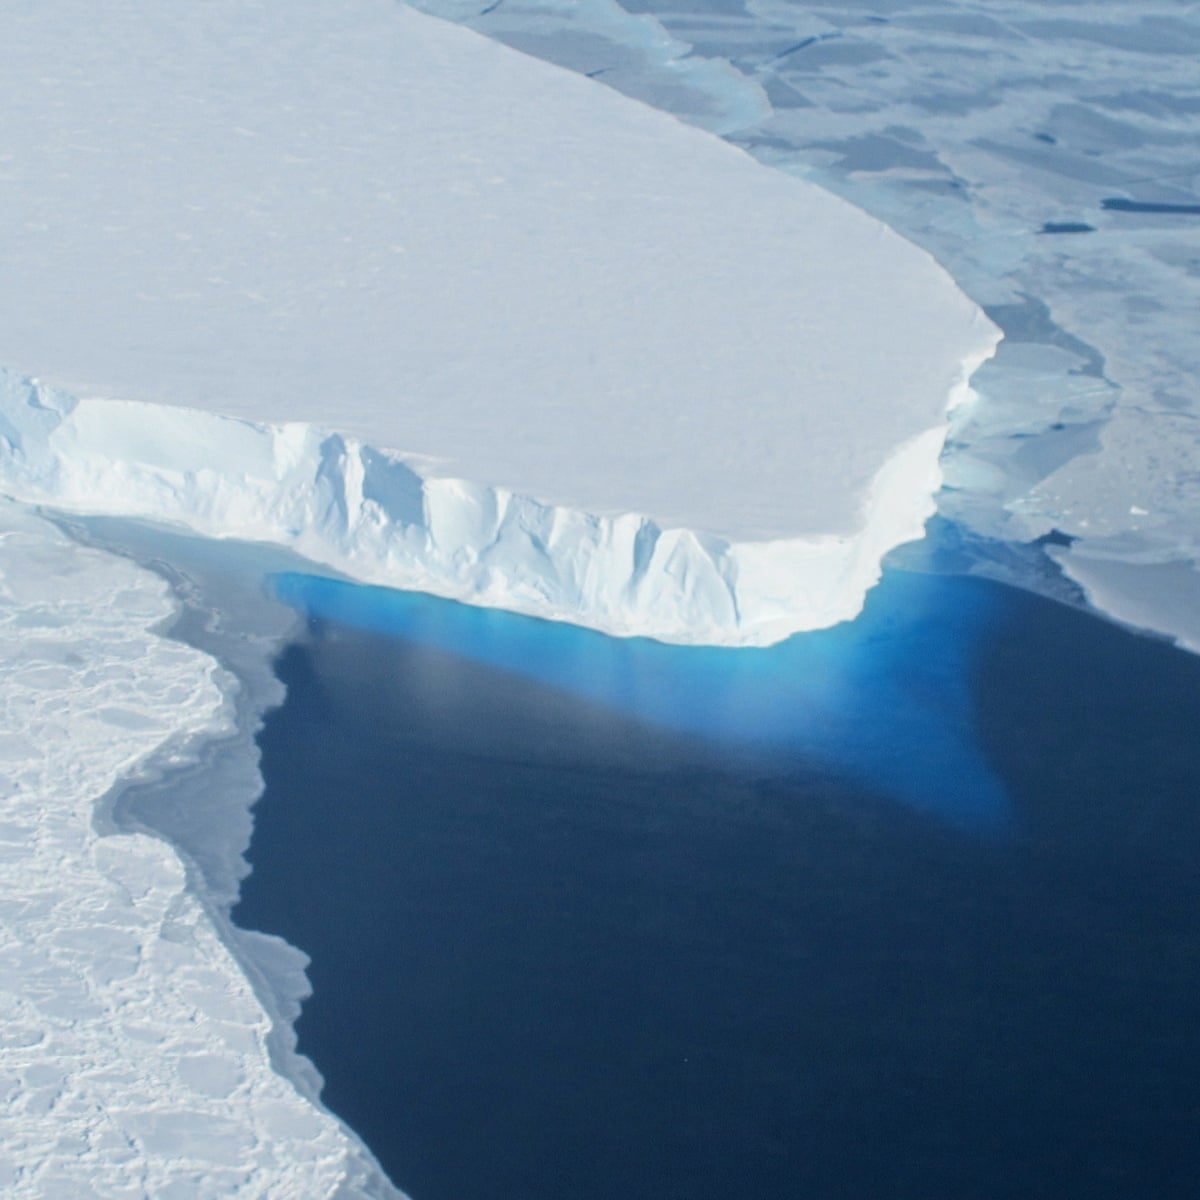 Build walls on seafloor to stop glaciers melting, scientists say   Sea ice    The Guardian